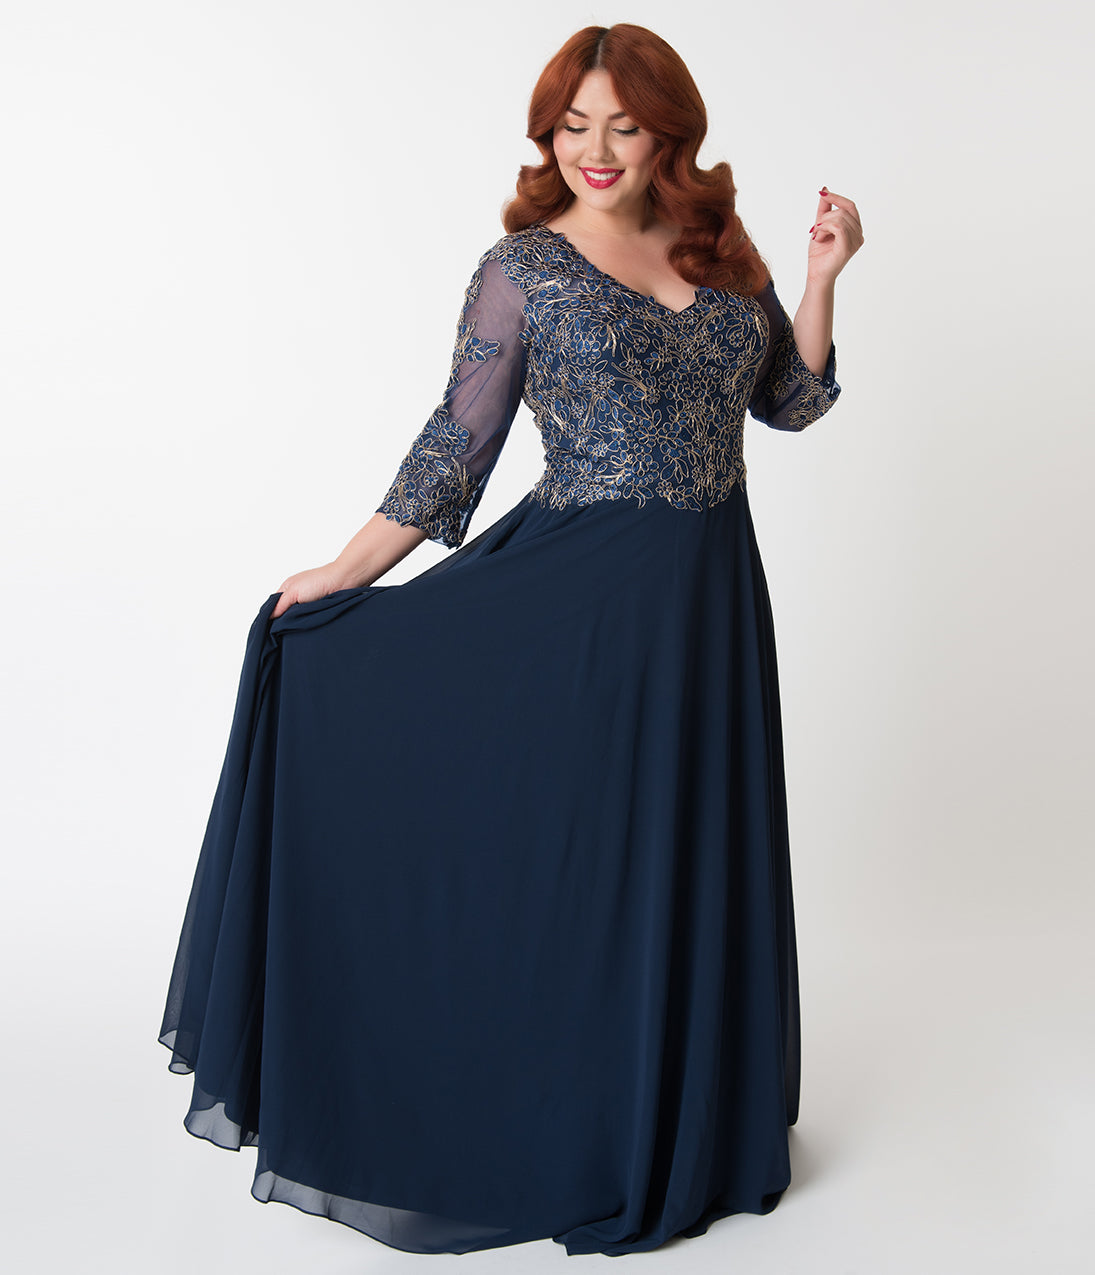 Vintage Inspired Evening Dresses Gowns And Formal Wear